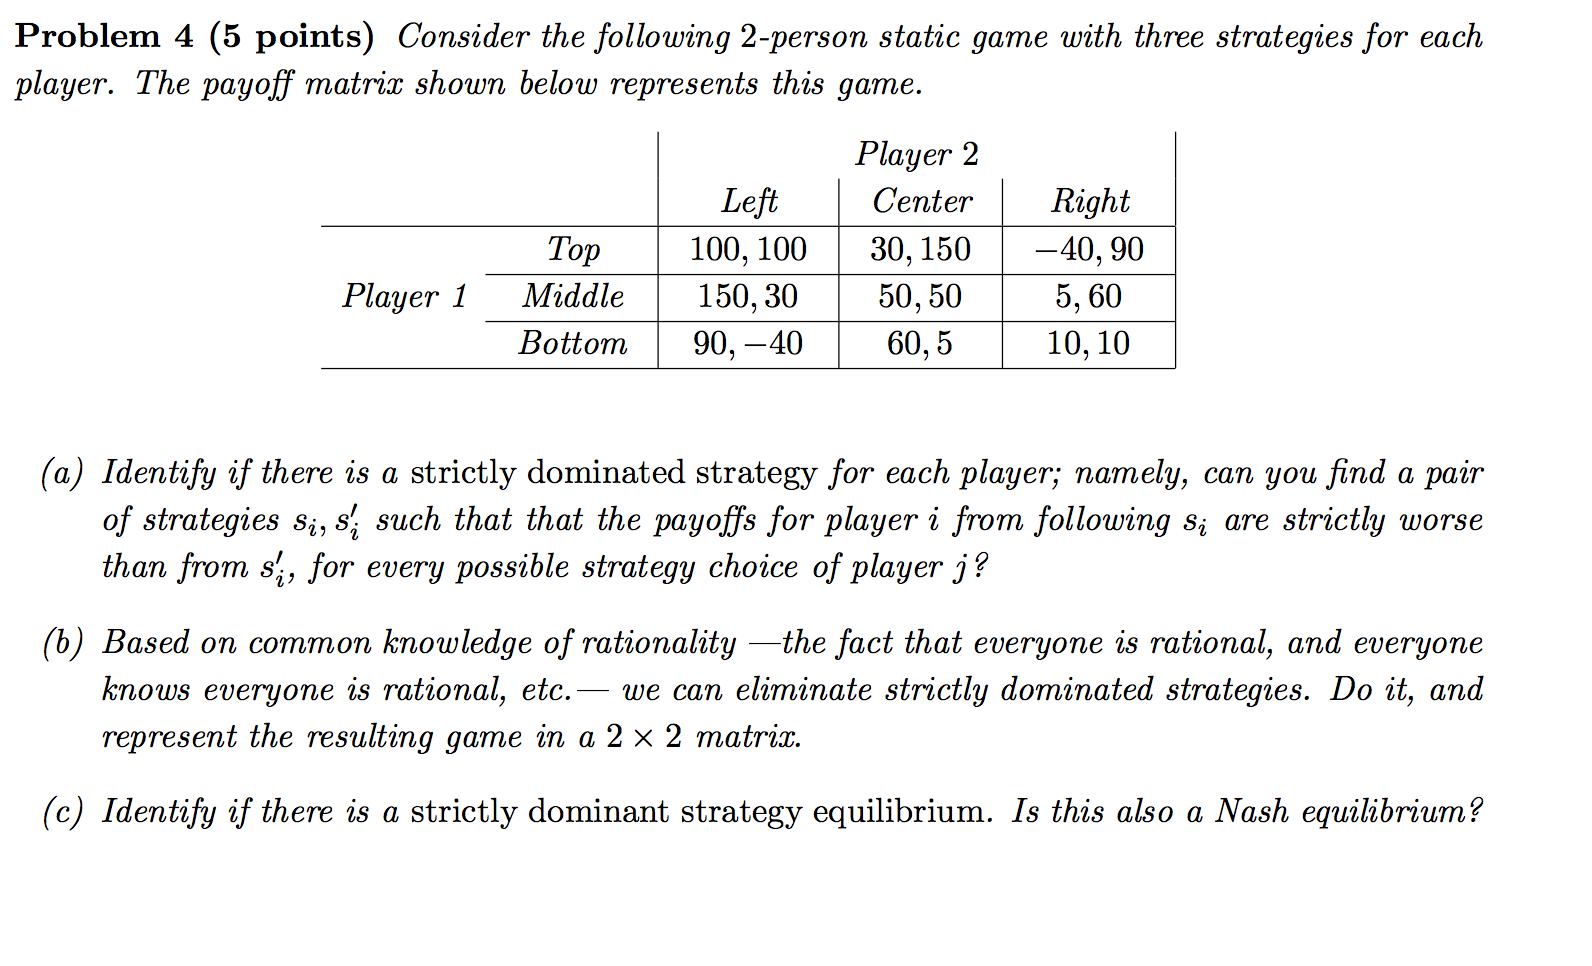 how to find equilibrium if there is no dominated strategies